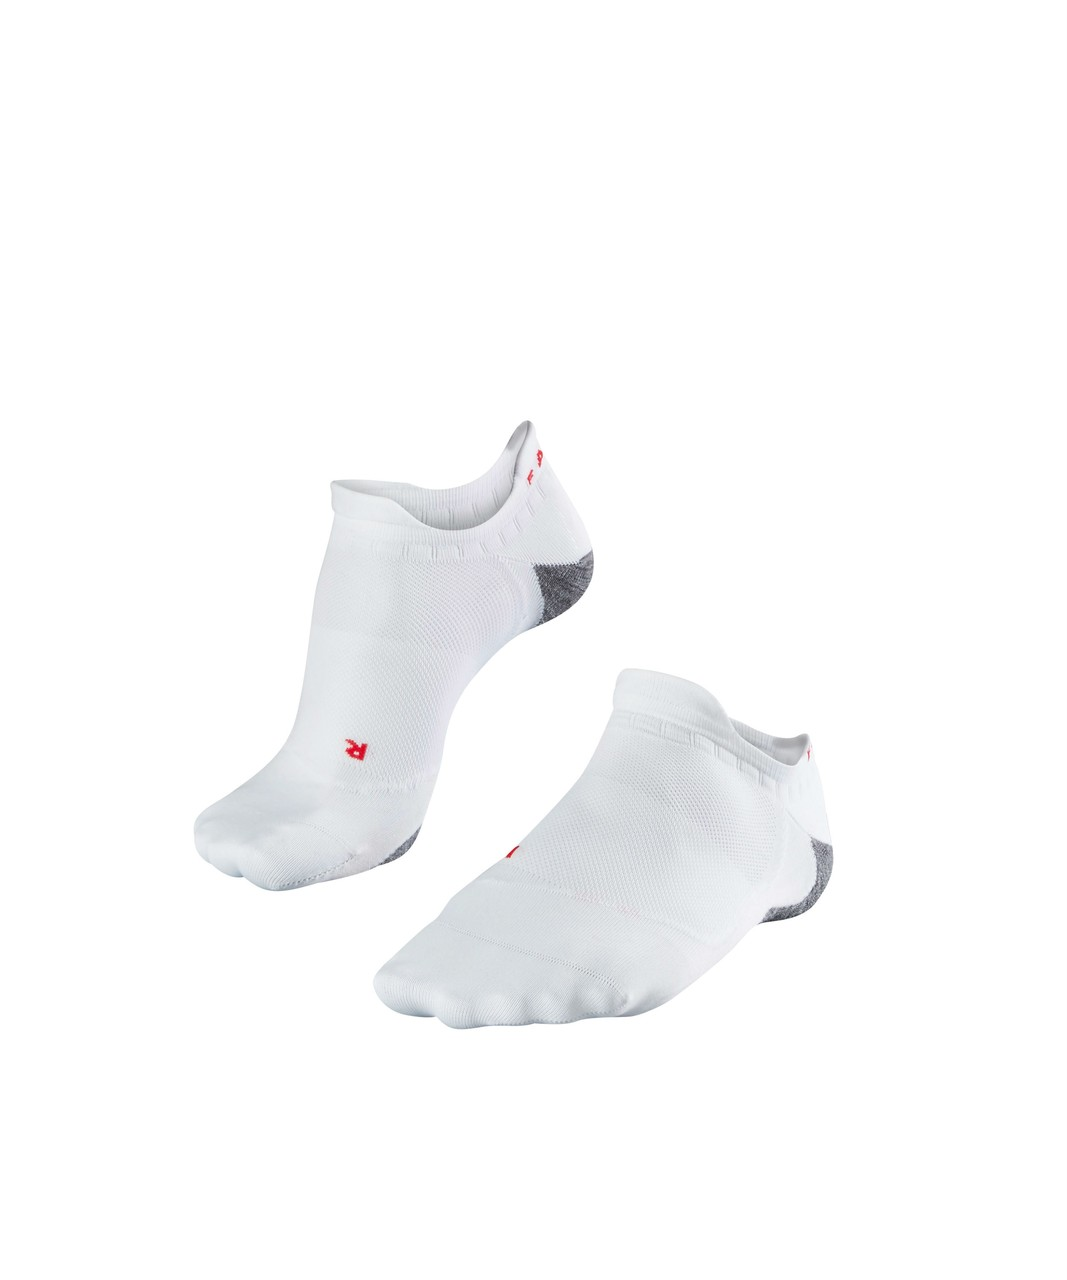 Falke RU5 Invisible Sock in White